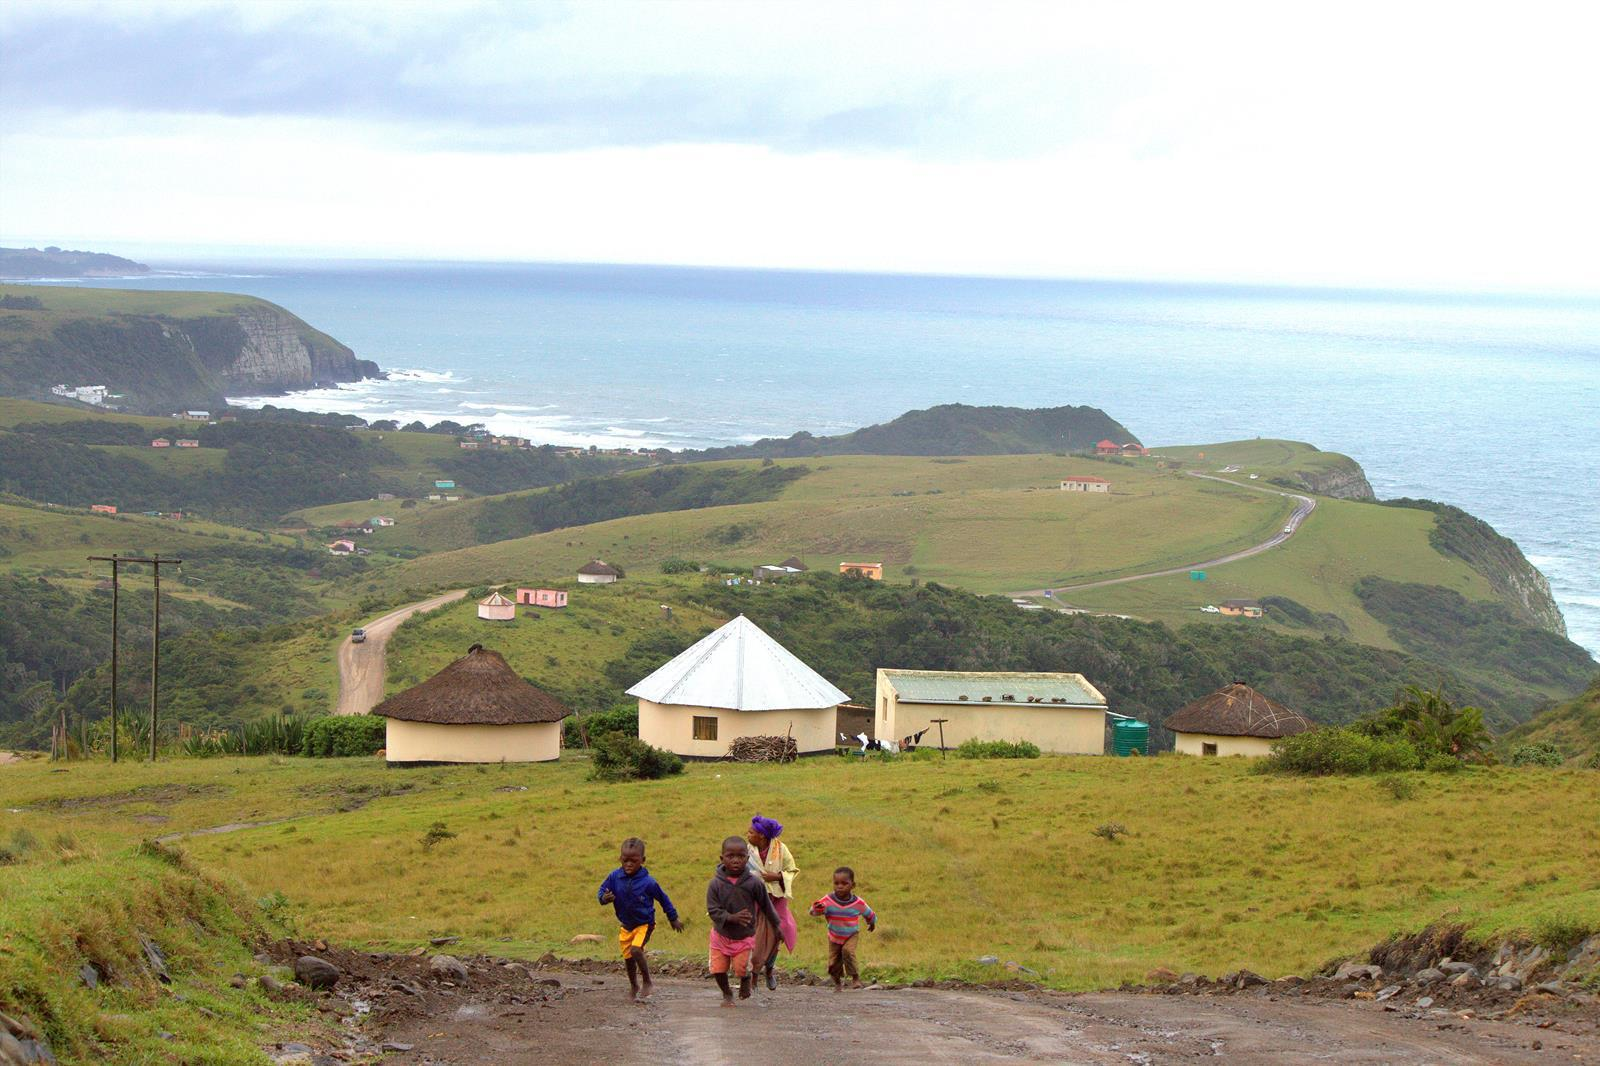 The rolling hills of the Transkei.